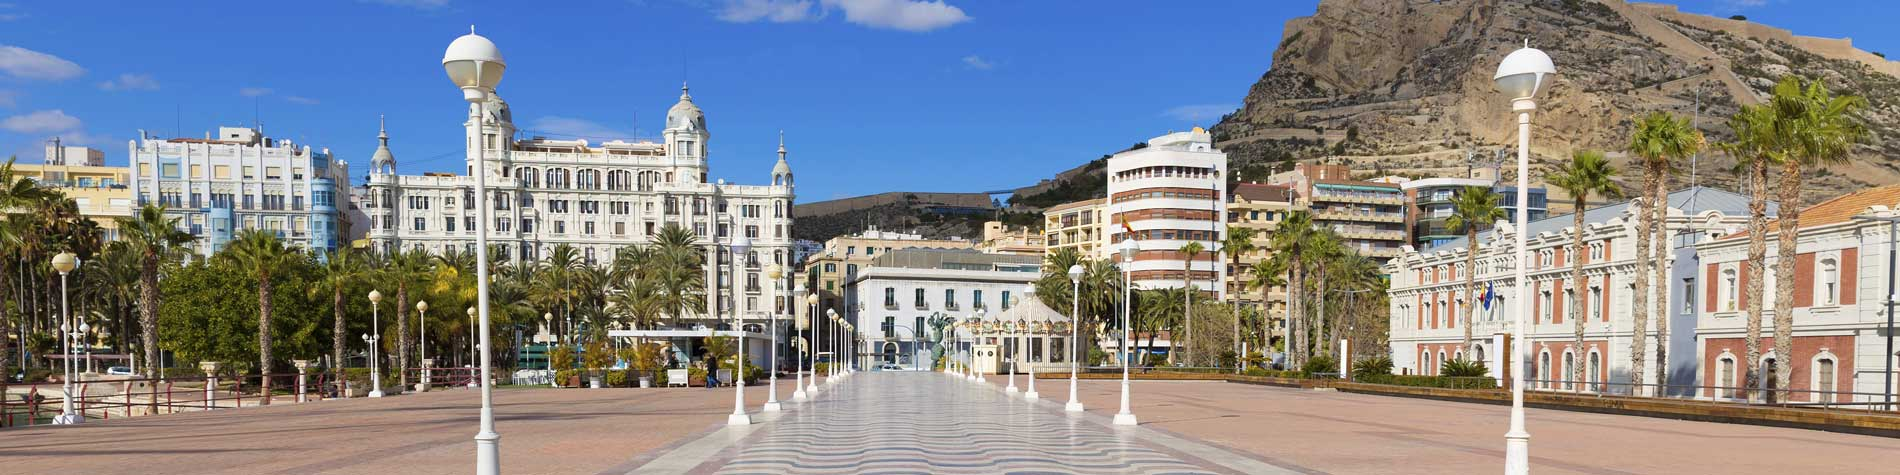 flights to alicante spain from bournemouth